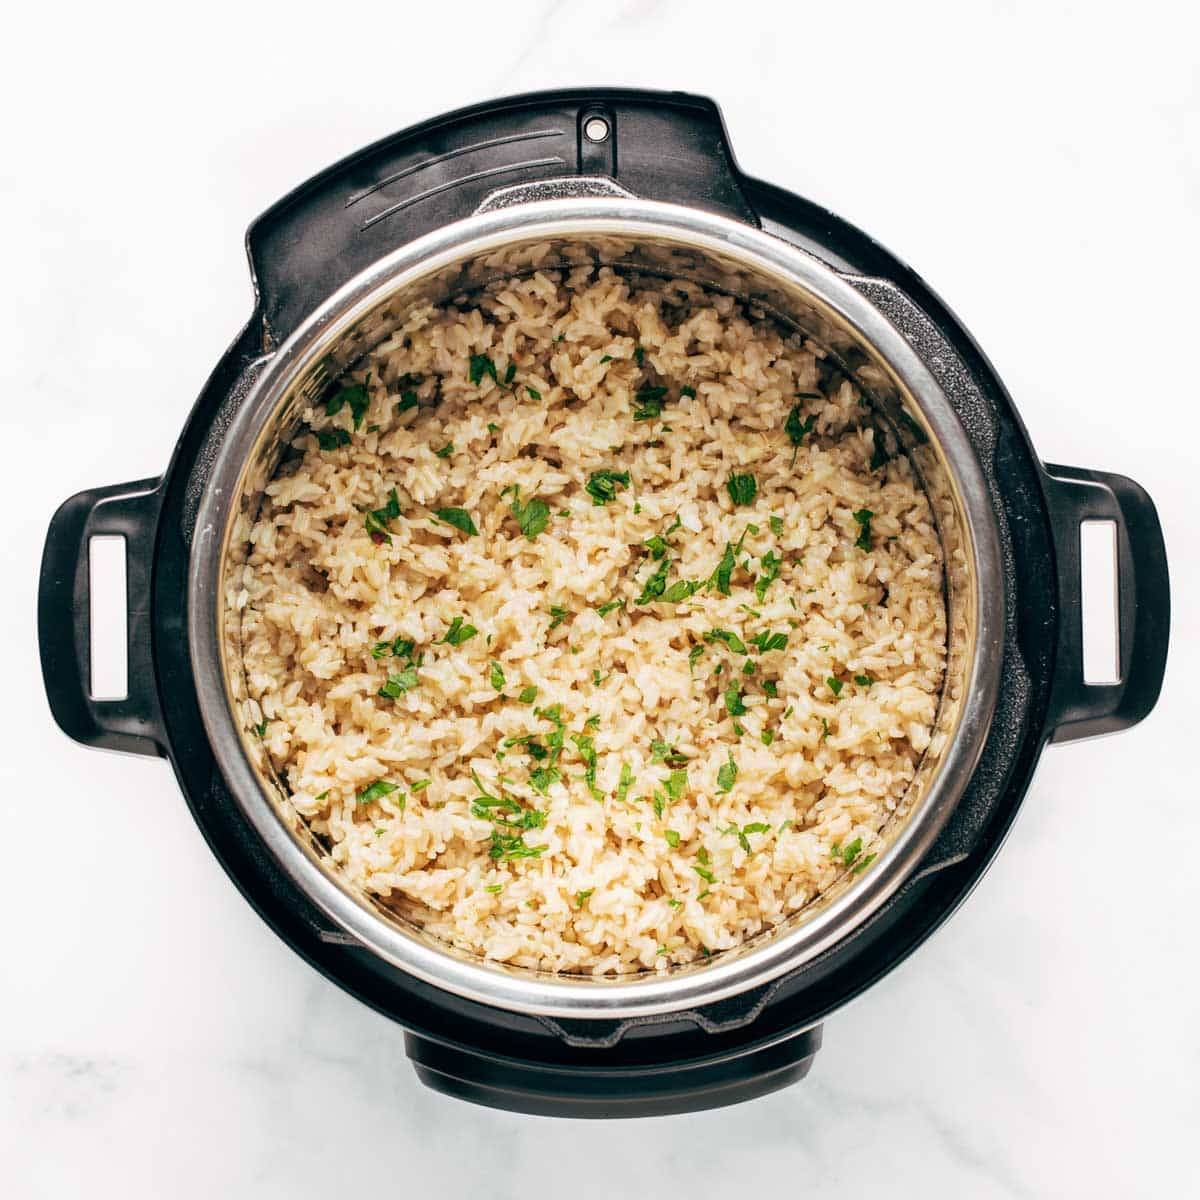 Brown rice in the Instant Pot.